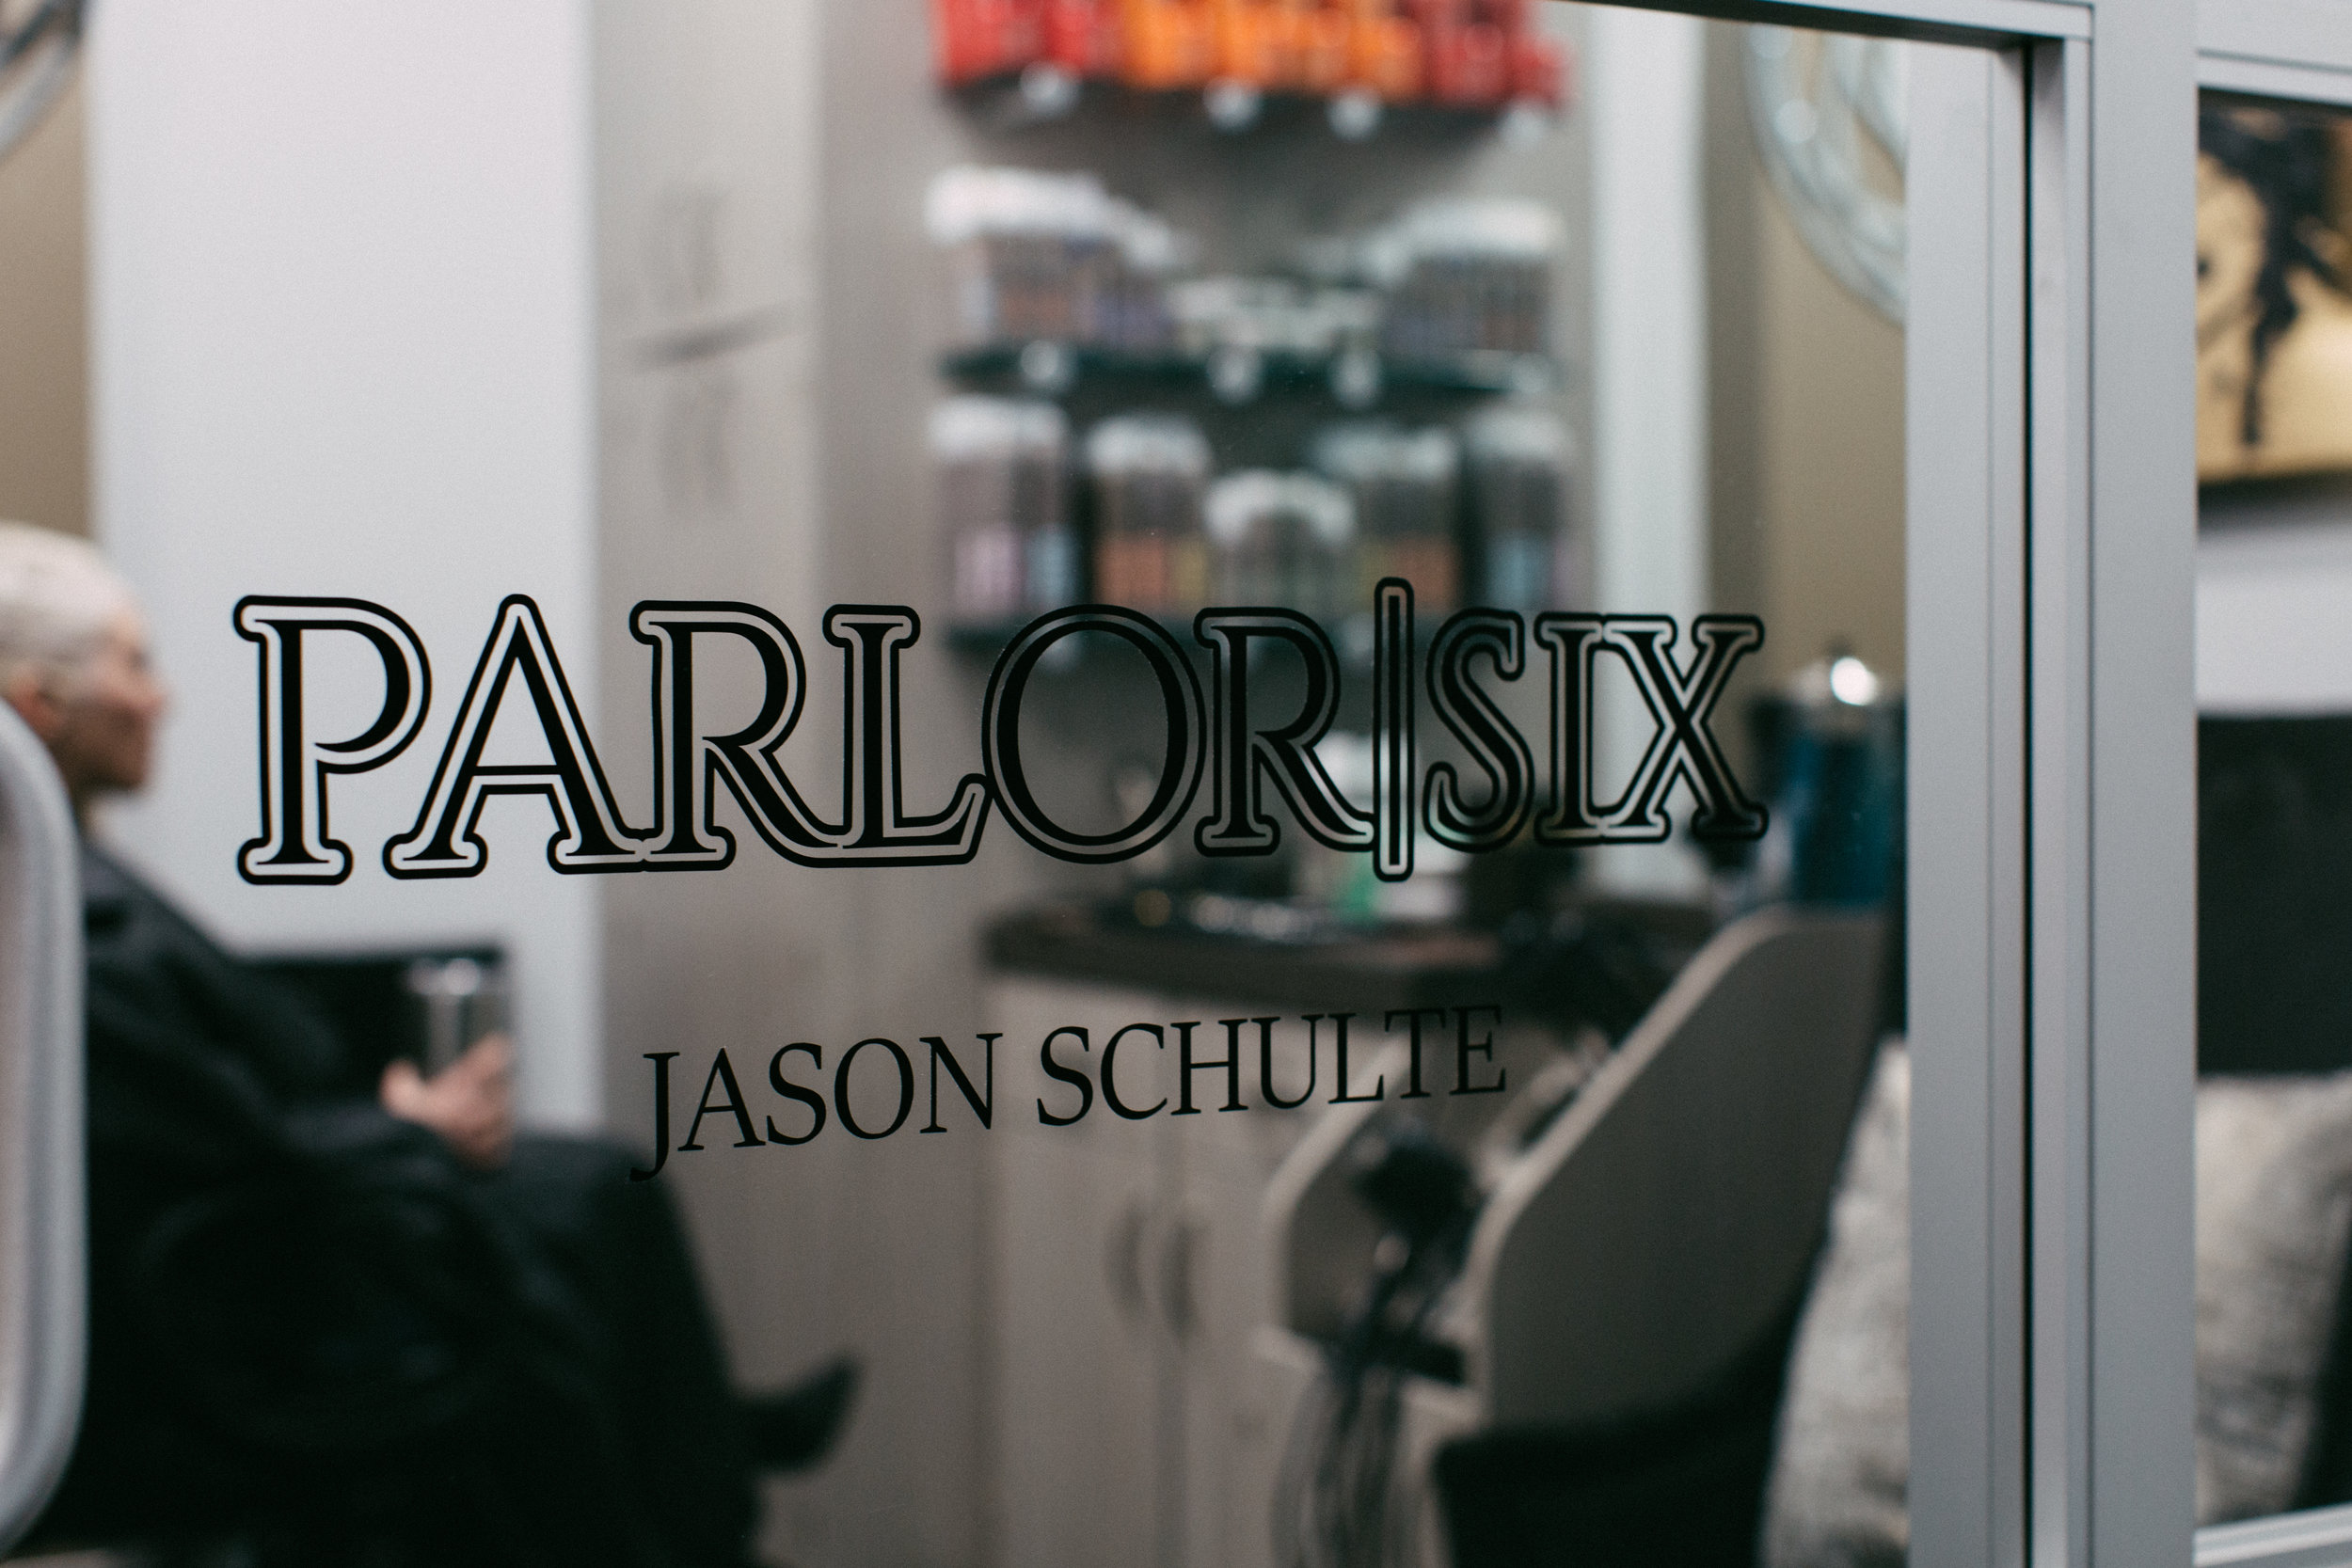 parlor six-jason schulte-pittsburgh salon-5.jpg